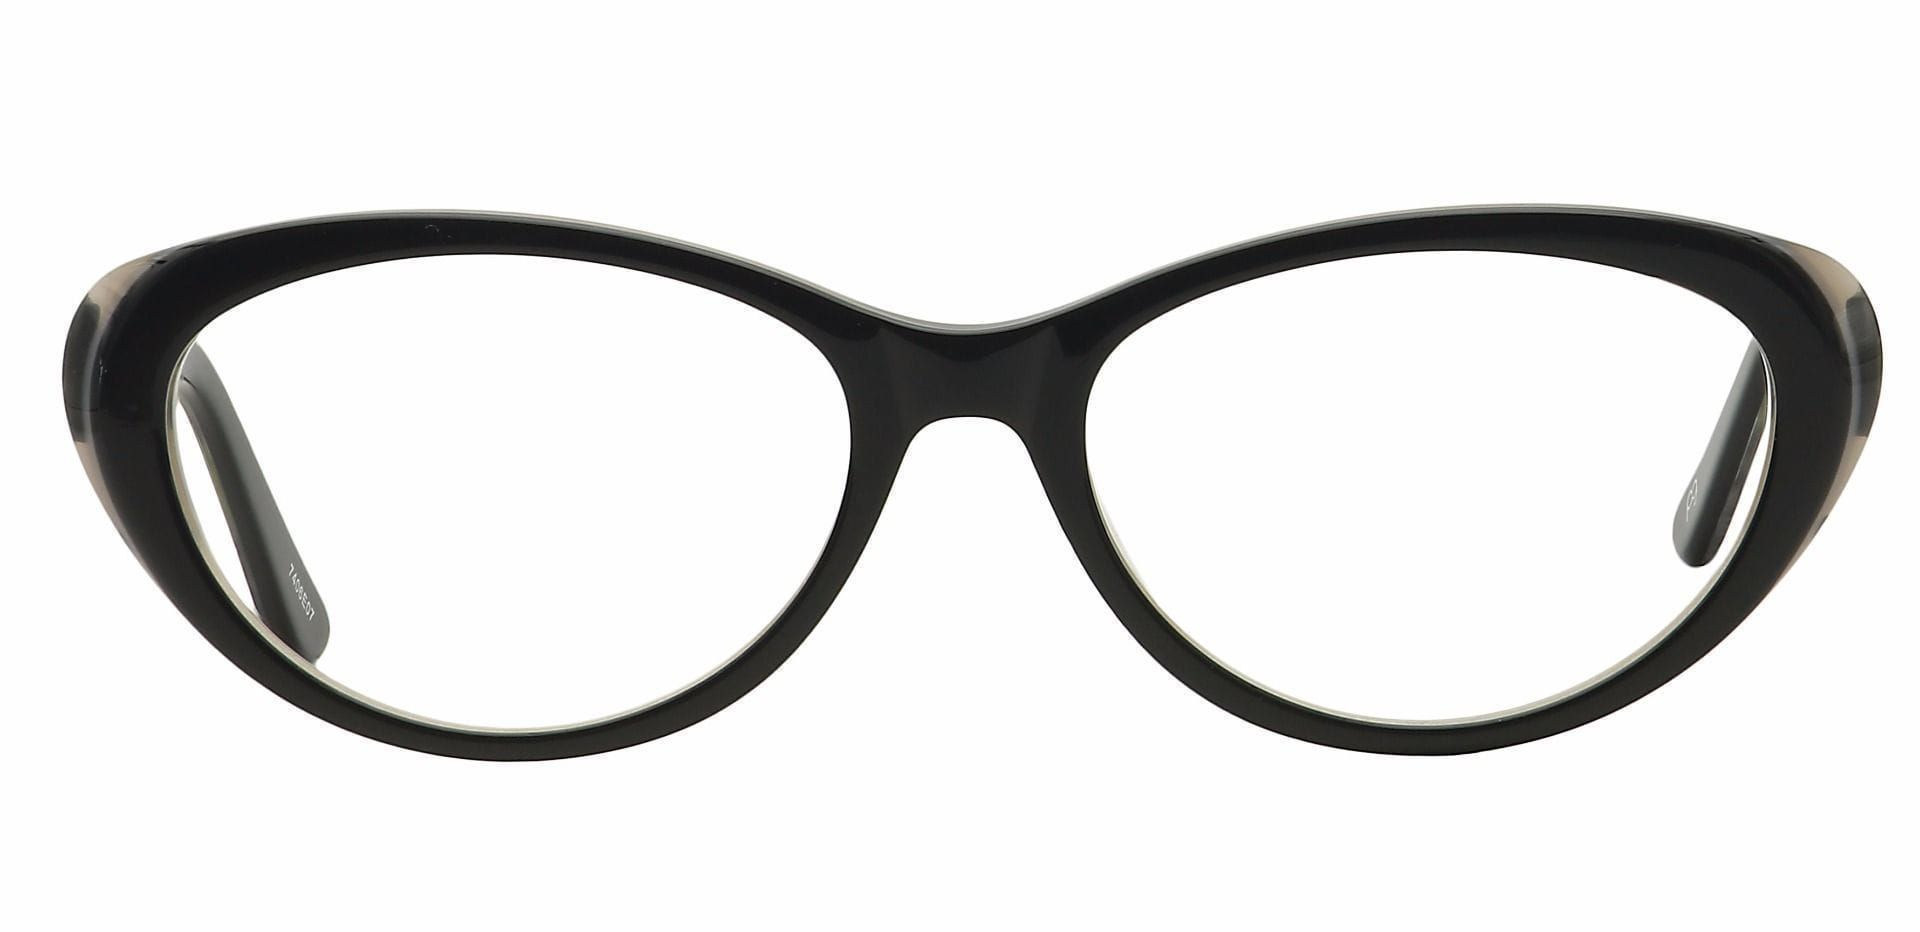 Asta Cat-Eye Progressive Glasses - Black